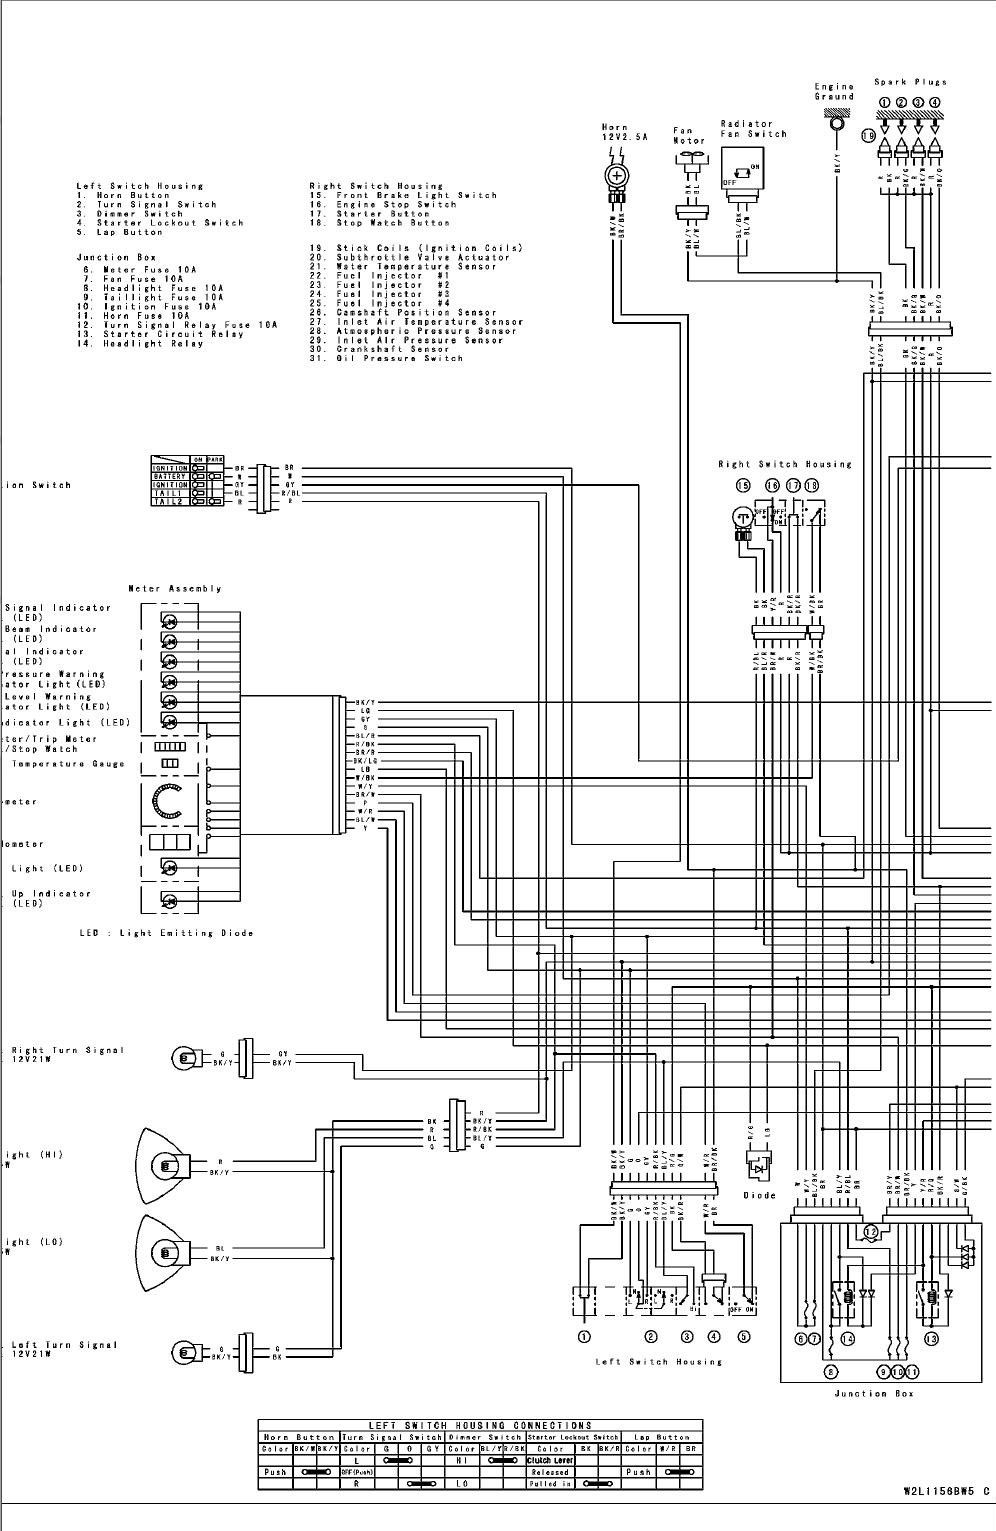 medium resolution of kawasaki ninja zx600 wiring schematic wiring diagram blogwiring diagram 2007 zx6r schema diagram database kawasaki ninja